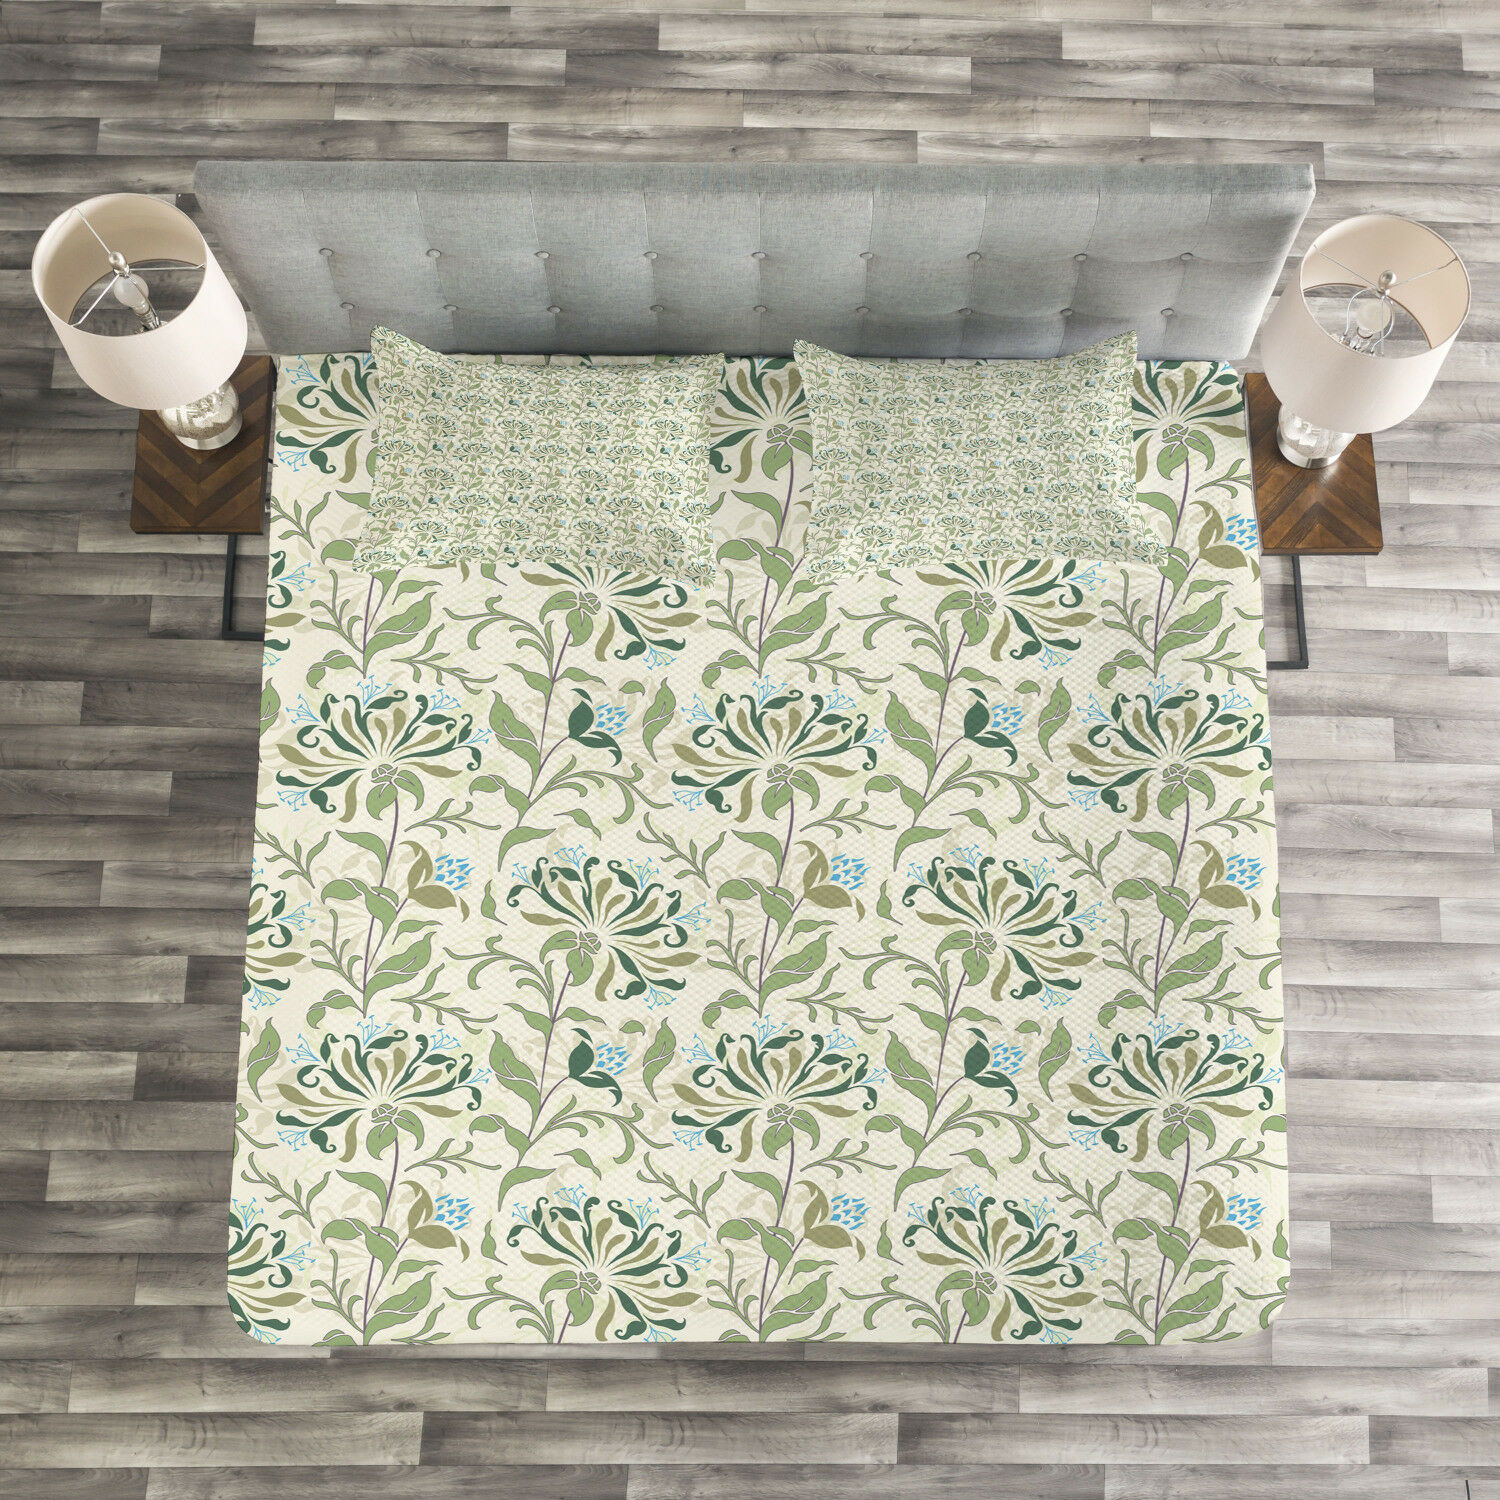 Green Quilted Bedspread & Pillow Shams Set, Pastel Floral Ornaments Print